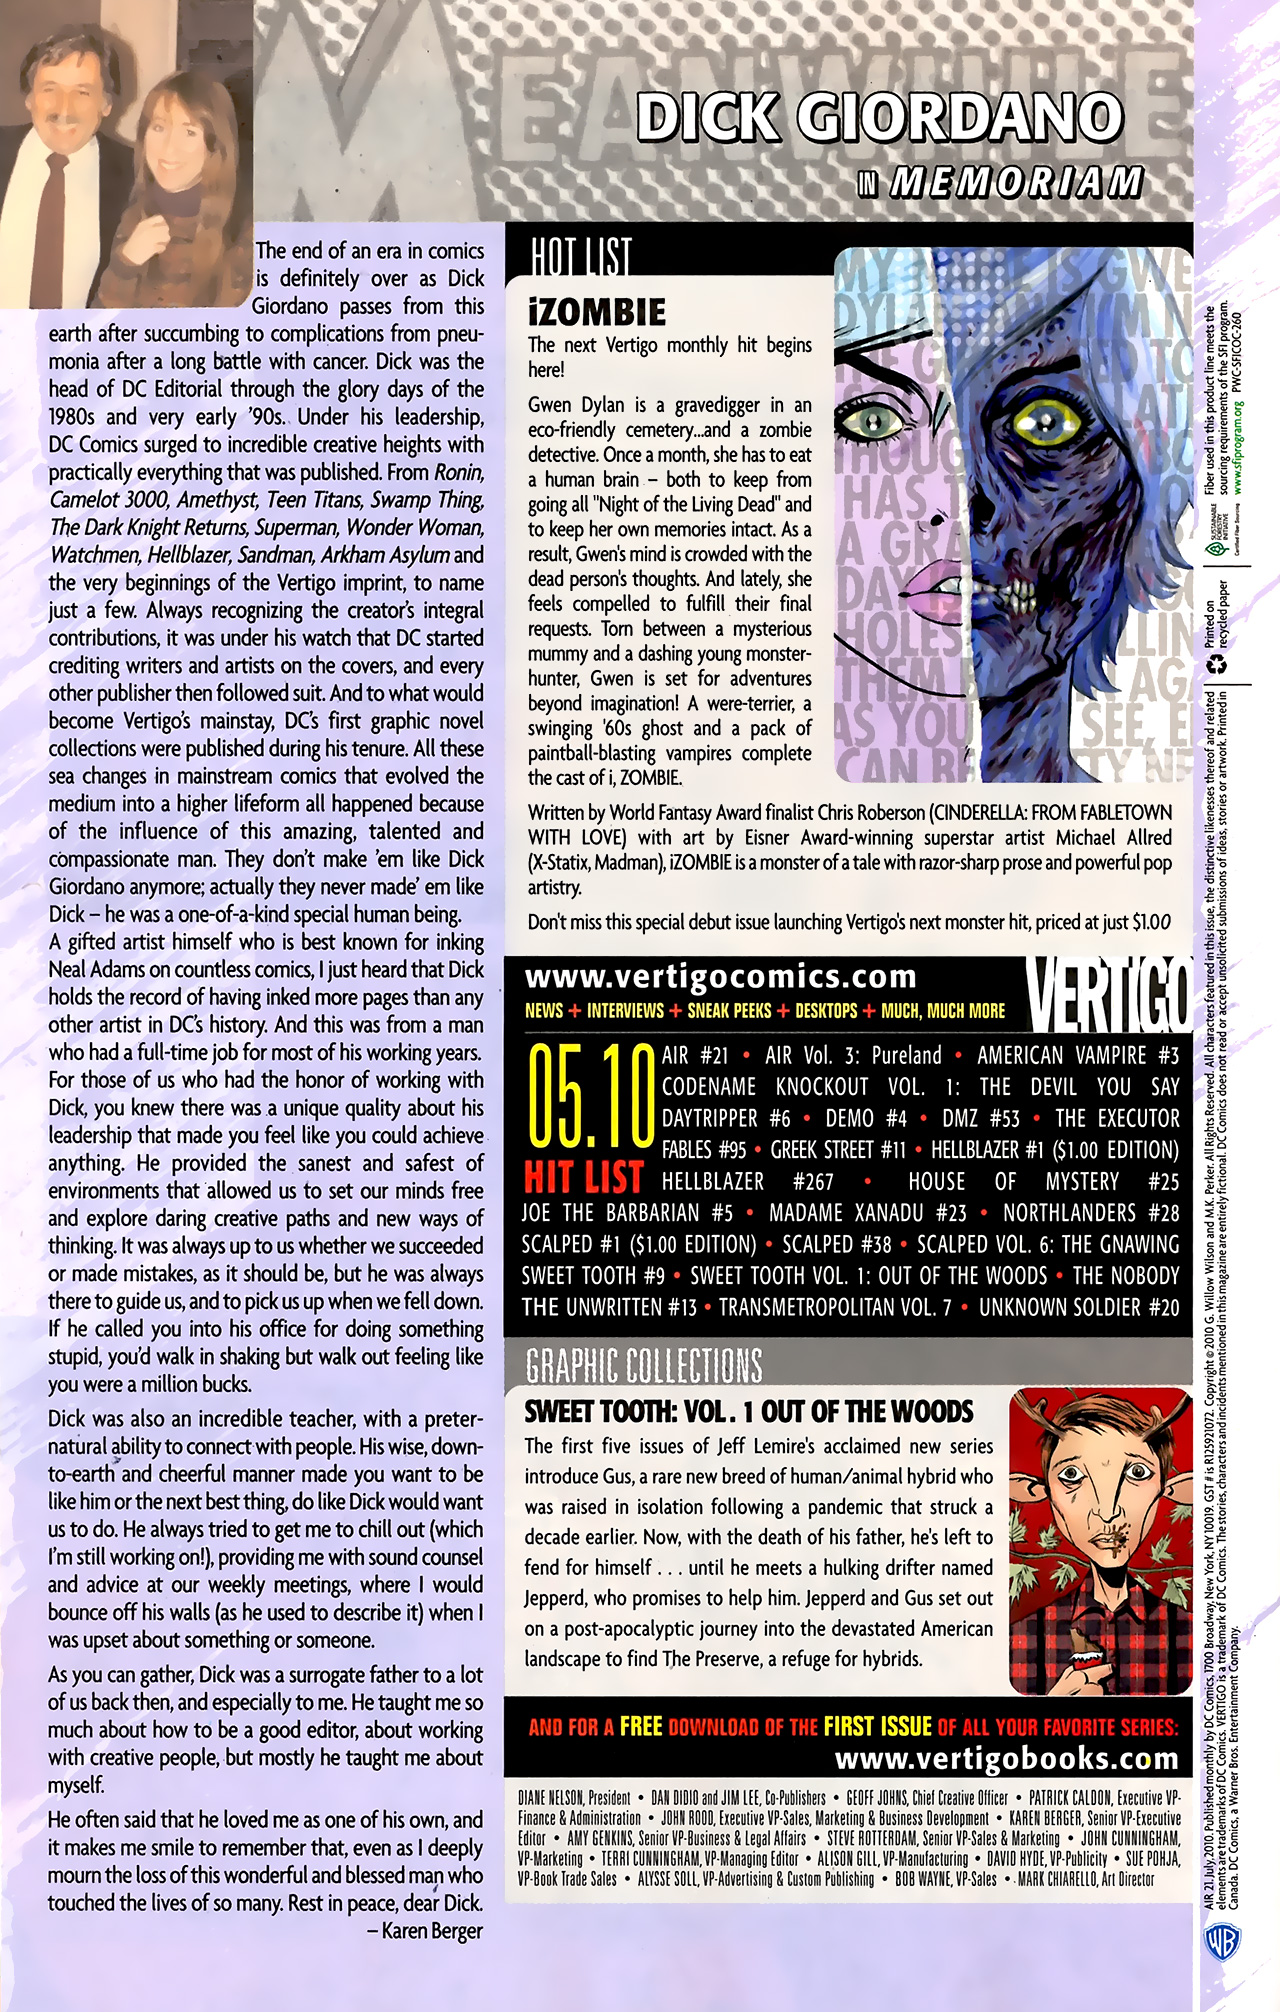 Read online Air comic -  Issue #21 - 23